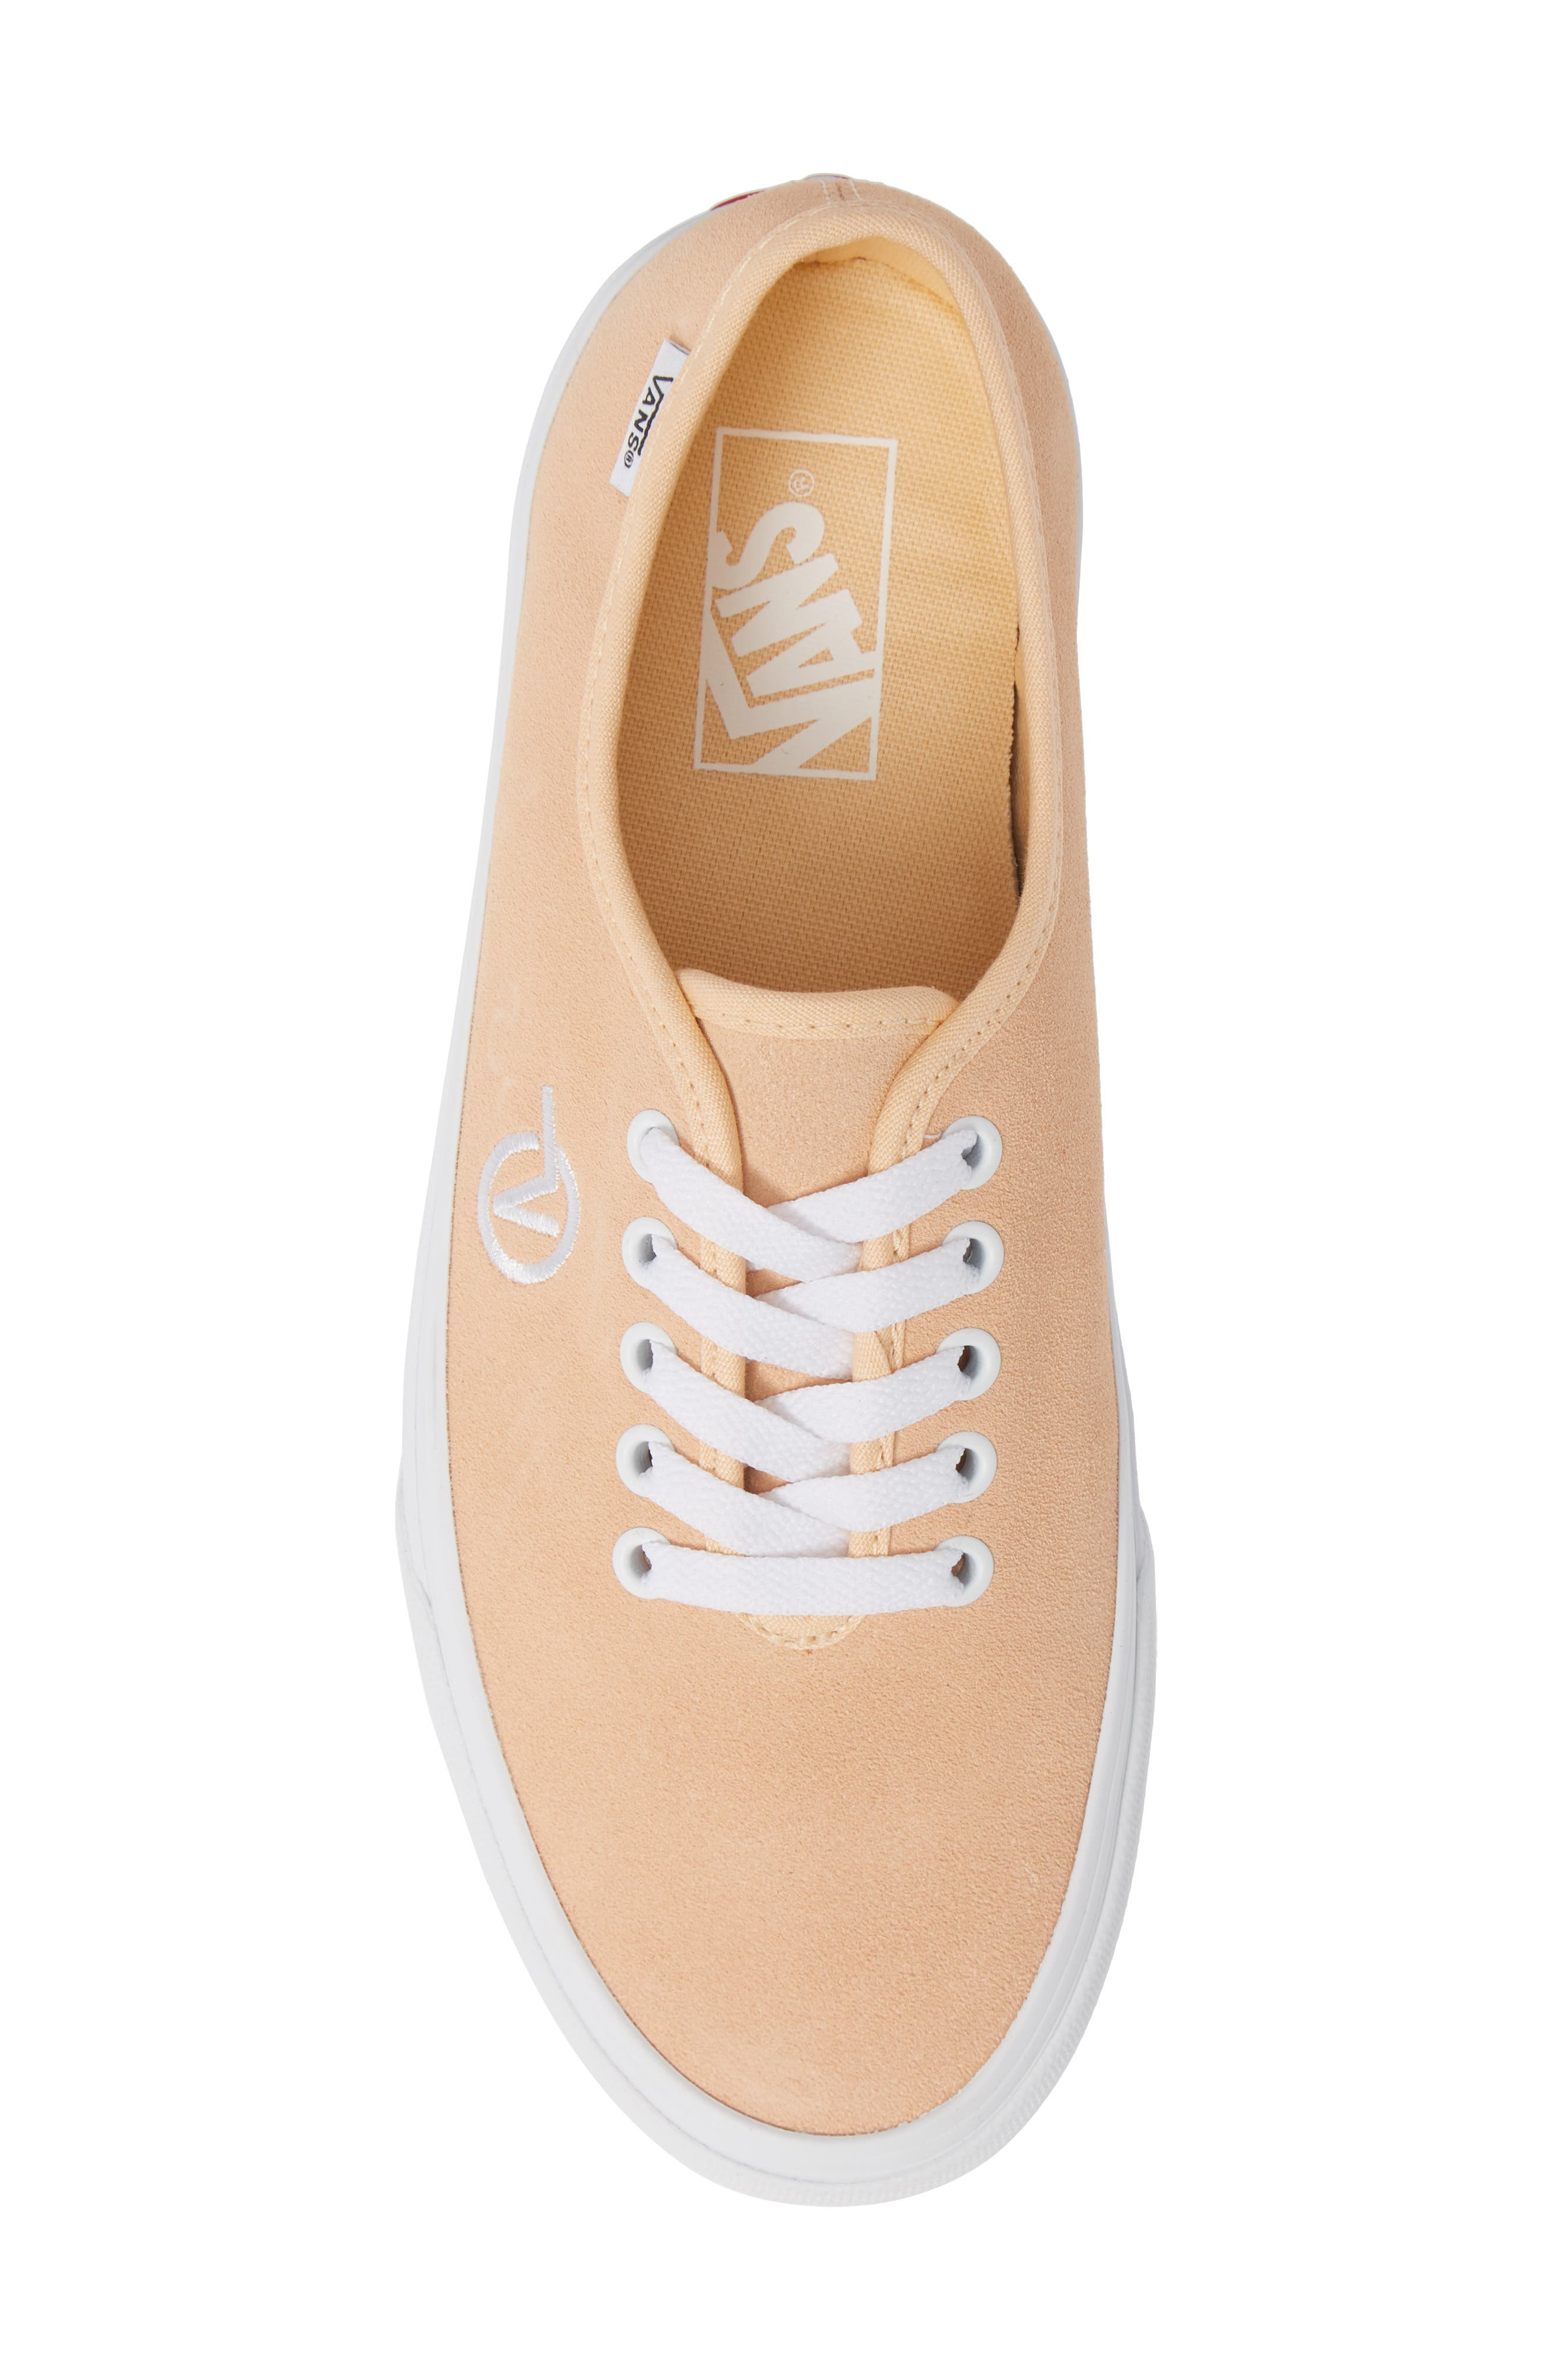 Authentic One-Piece Sneaker,                             Alternate thumbnail 5, color,                             BLEACHED APRICOT/ SUEDE